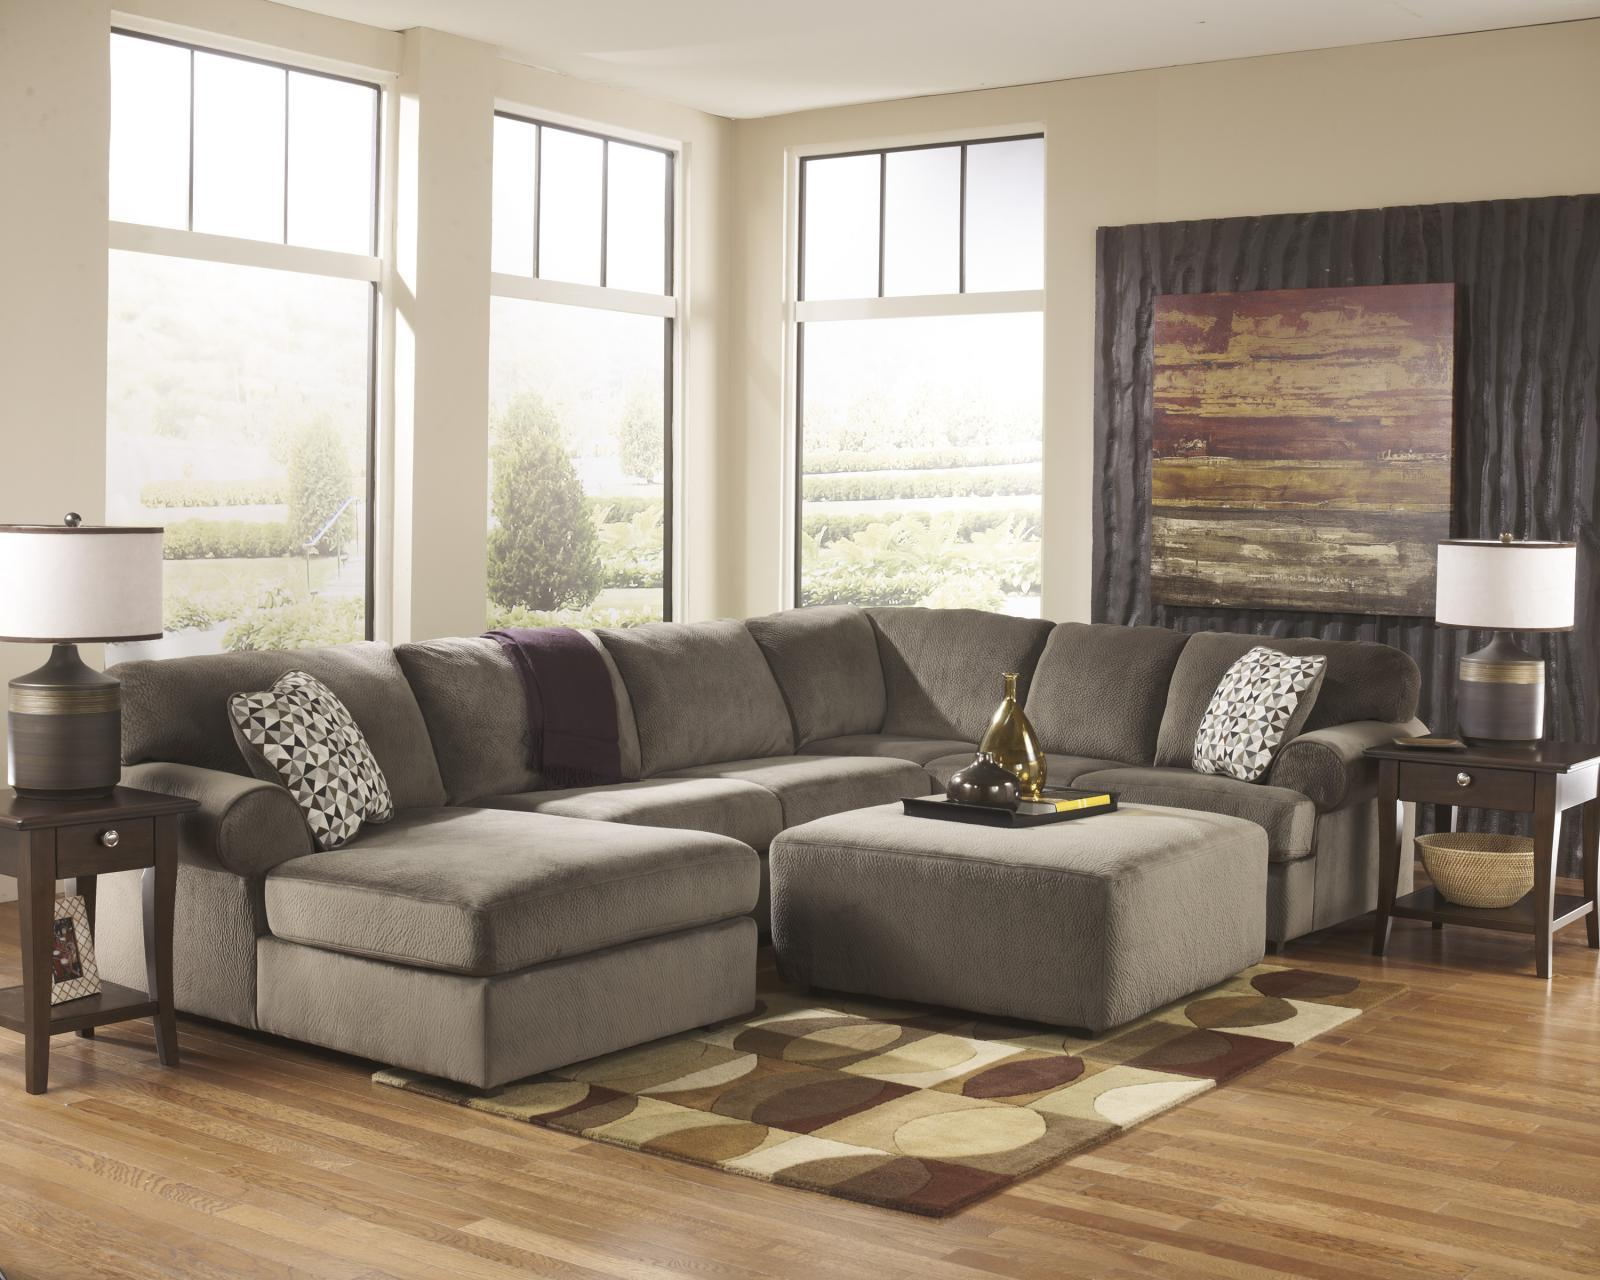 Ashley Jessa Place Living Room Sectional 4pcs in Dune Contemporary Left Facing